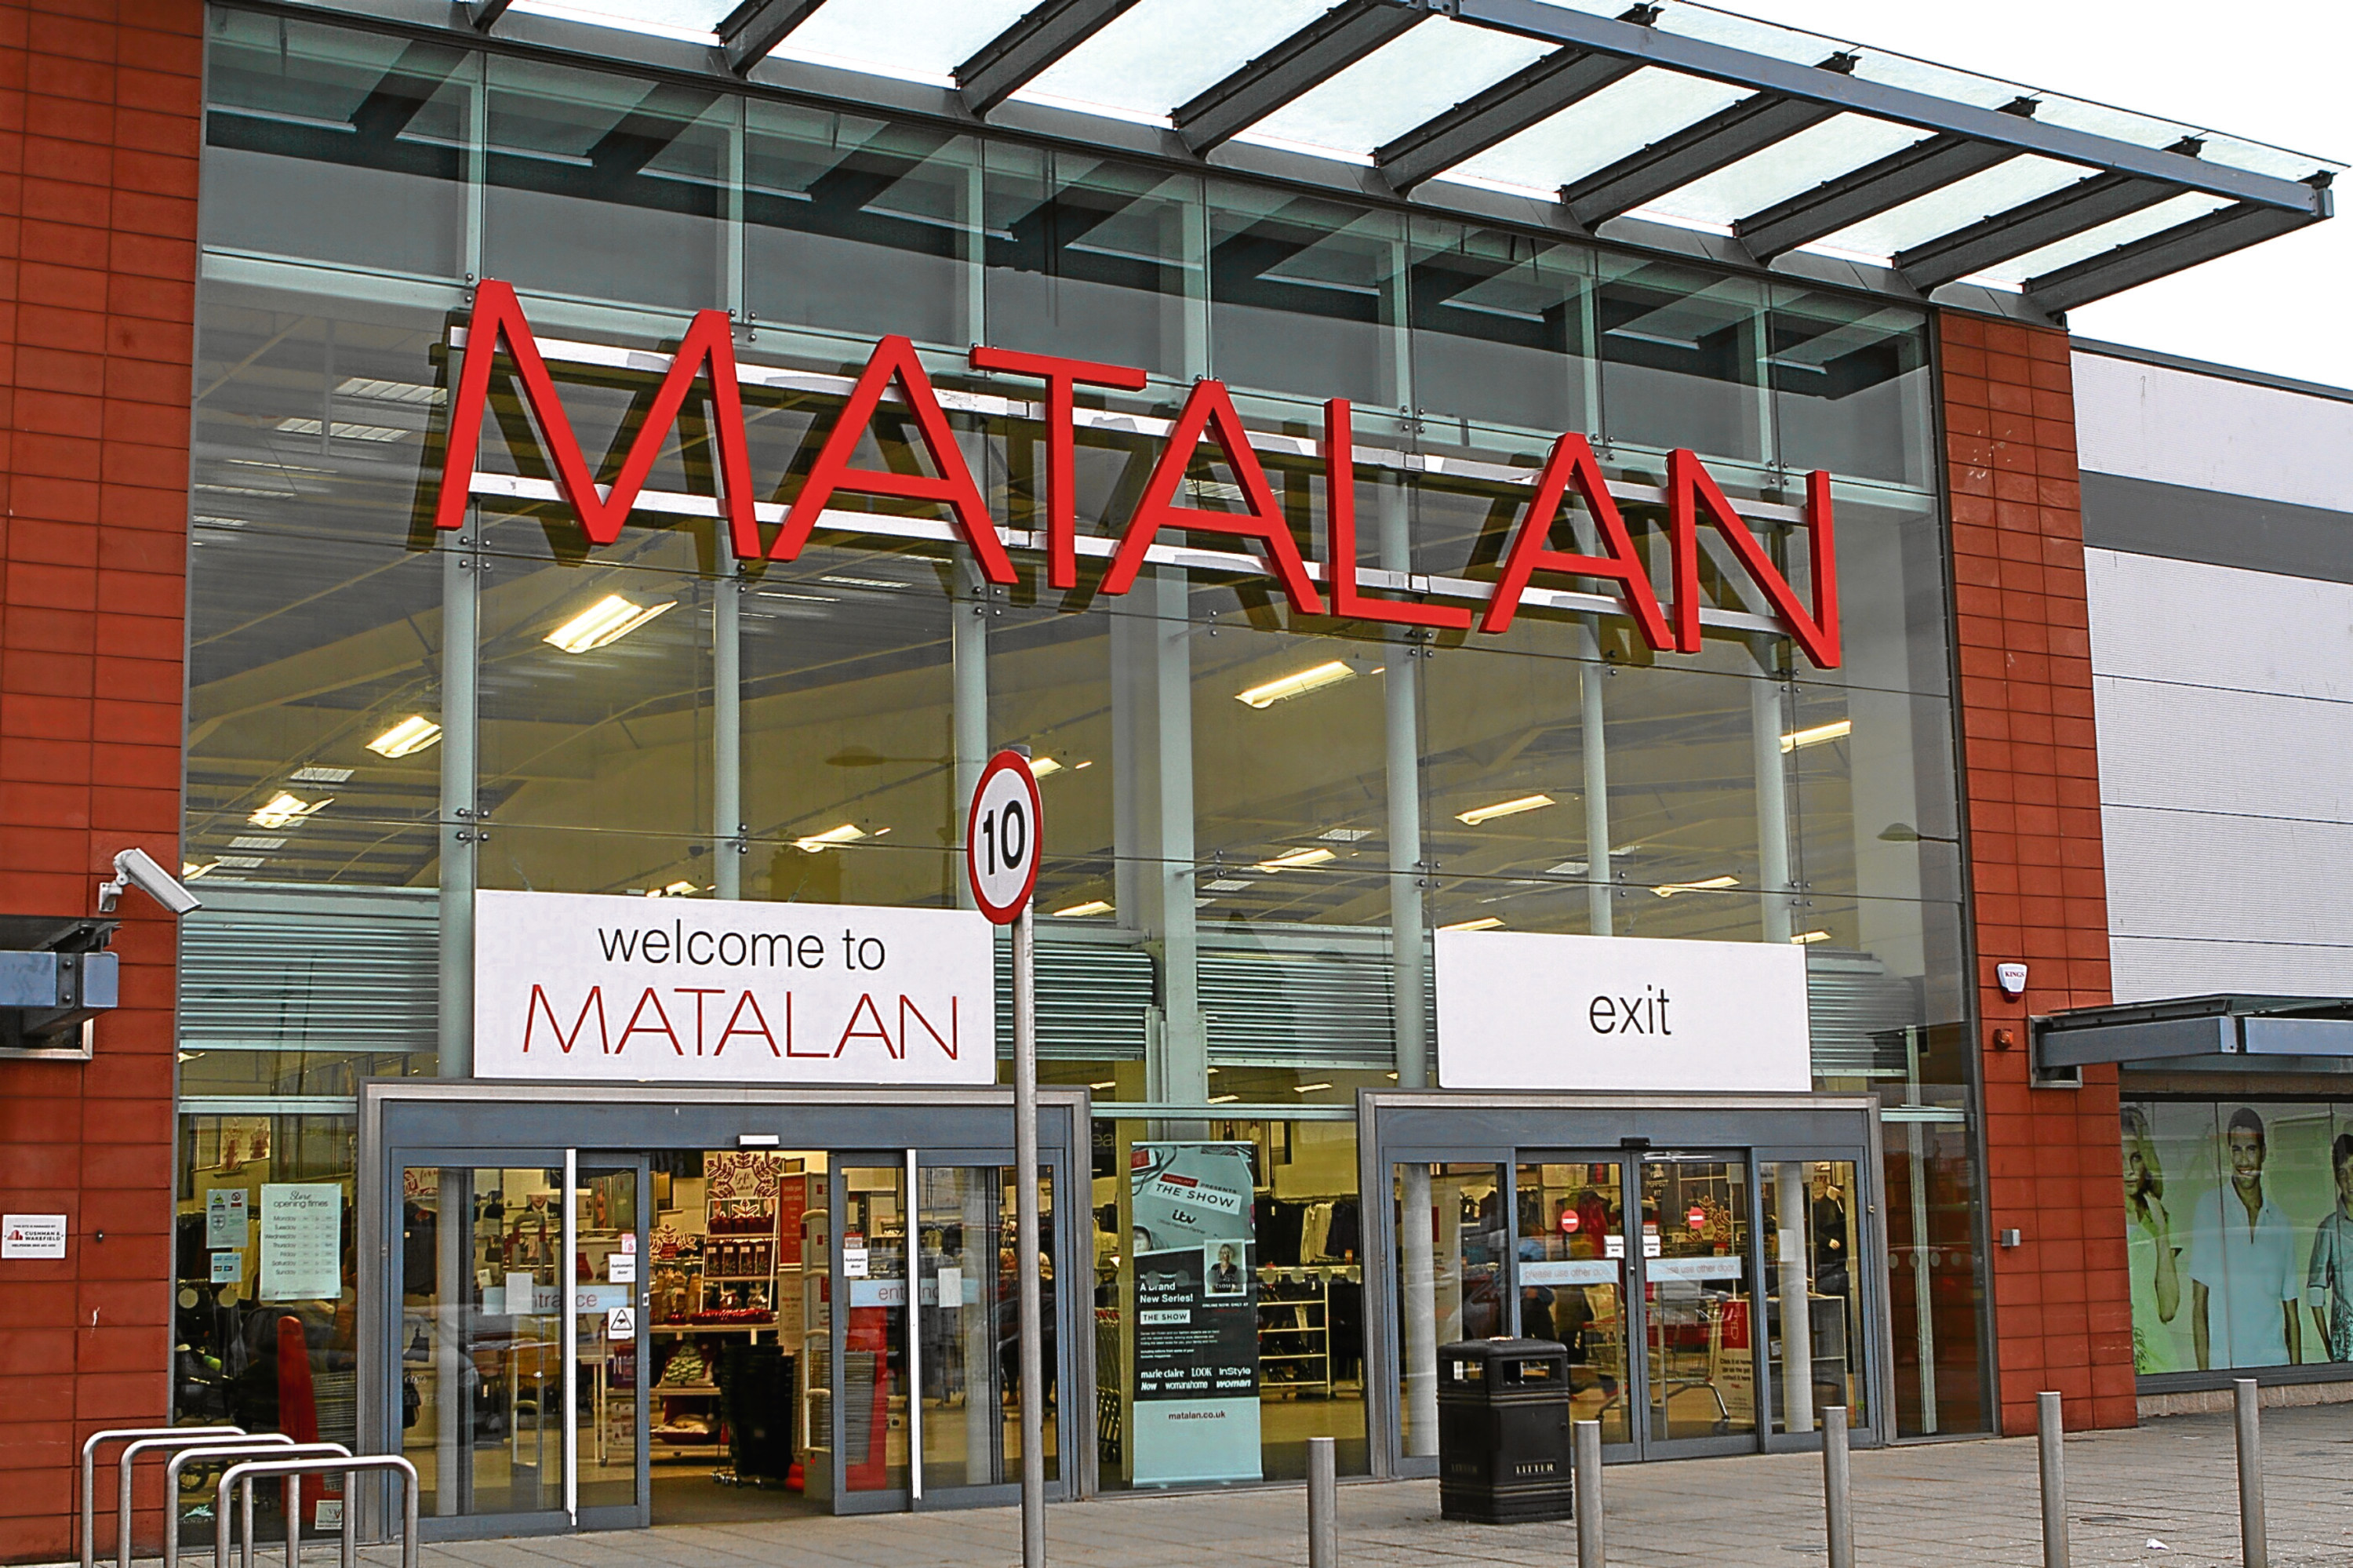 Matalan, which has a Dundee store, charges extra for delivery to the city.